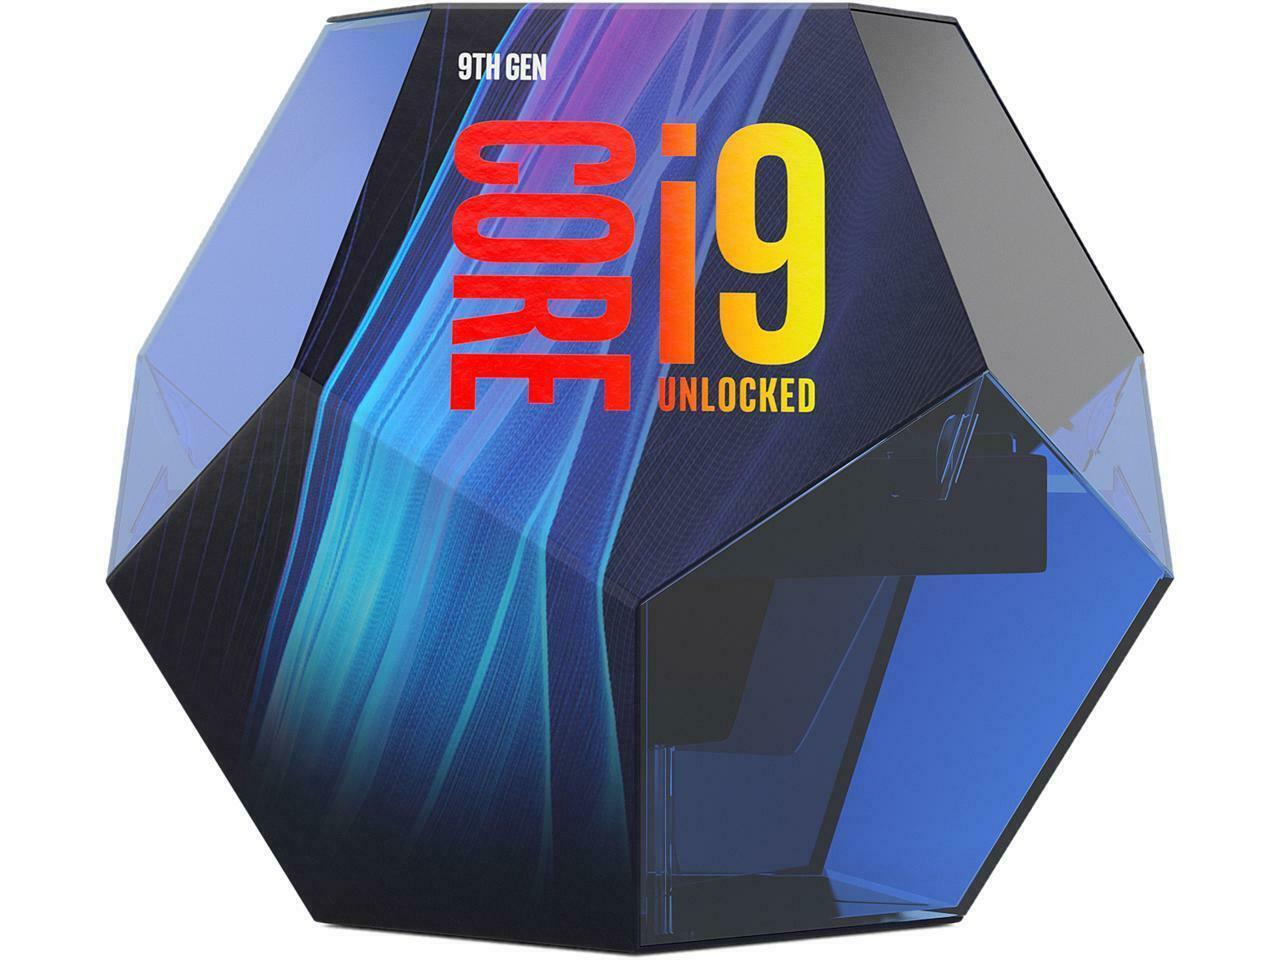 Intel Core i9-9900K up to 5.0 GHzTurbo unlocked Processor LG